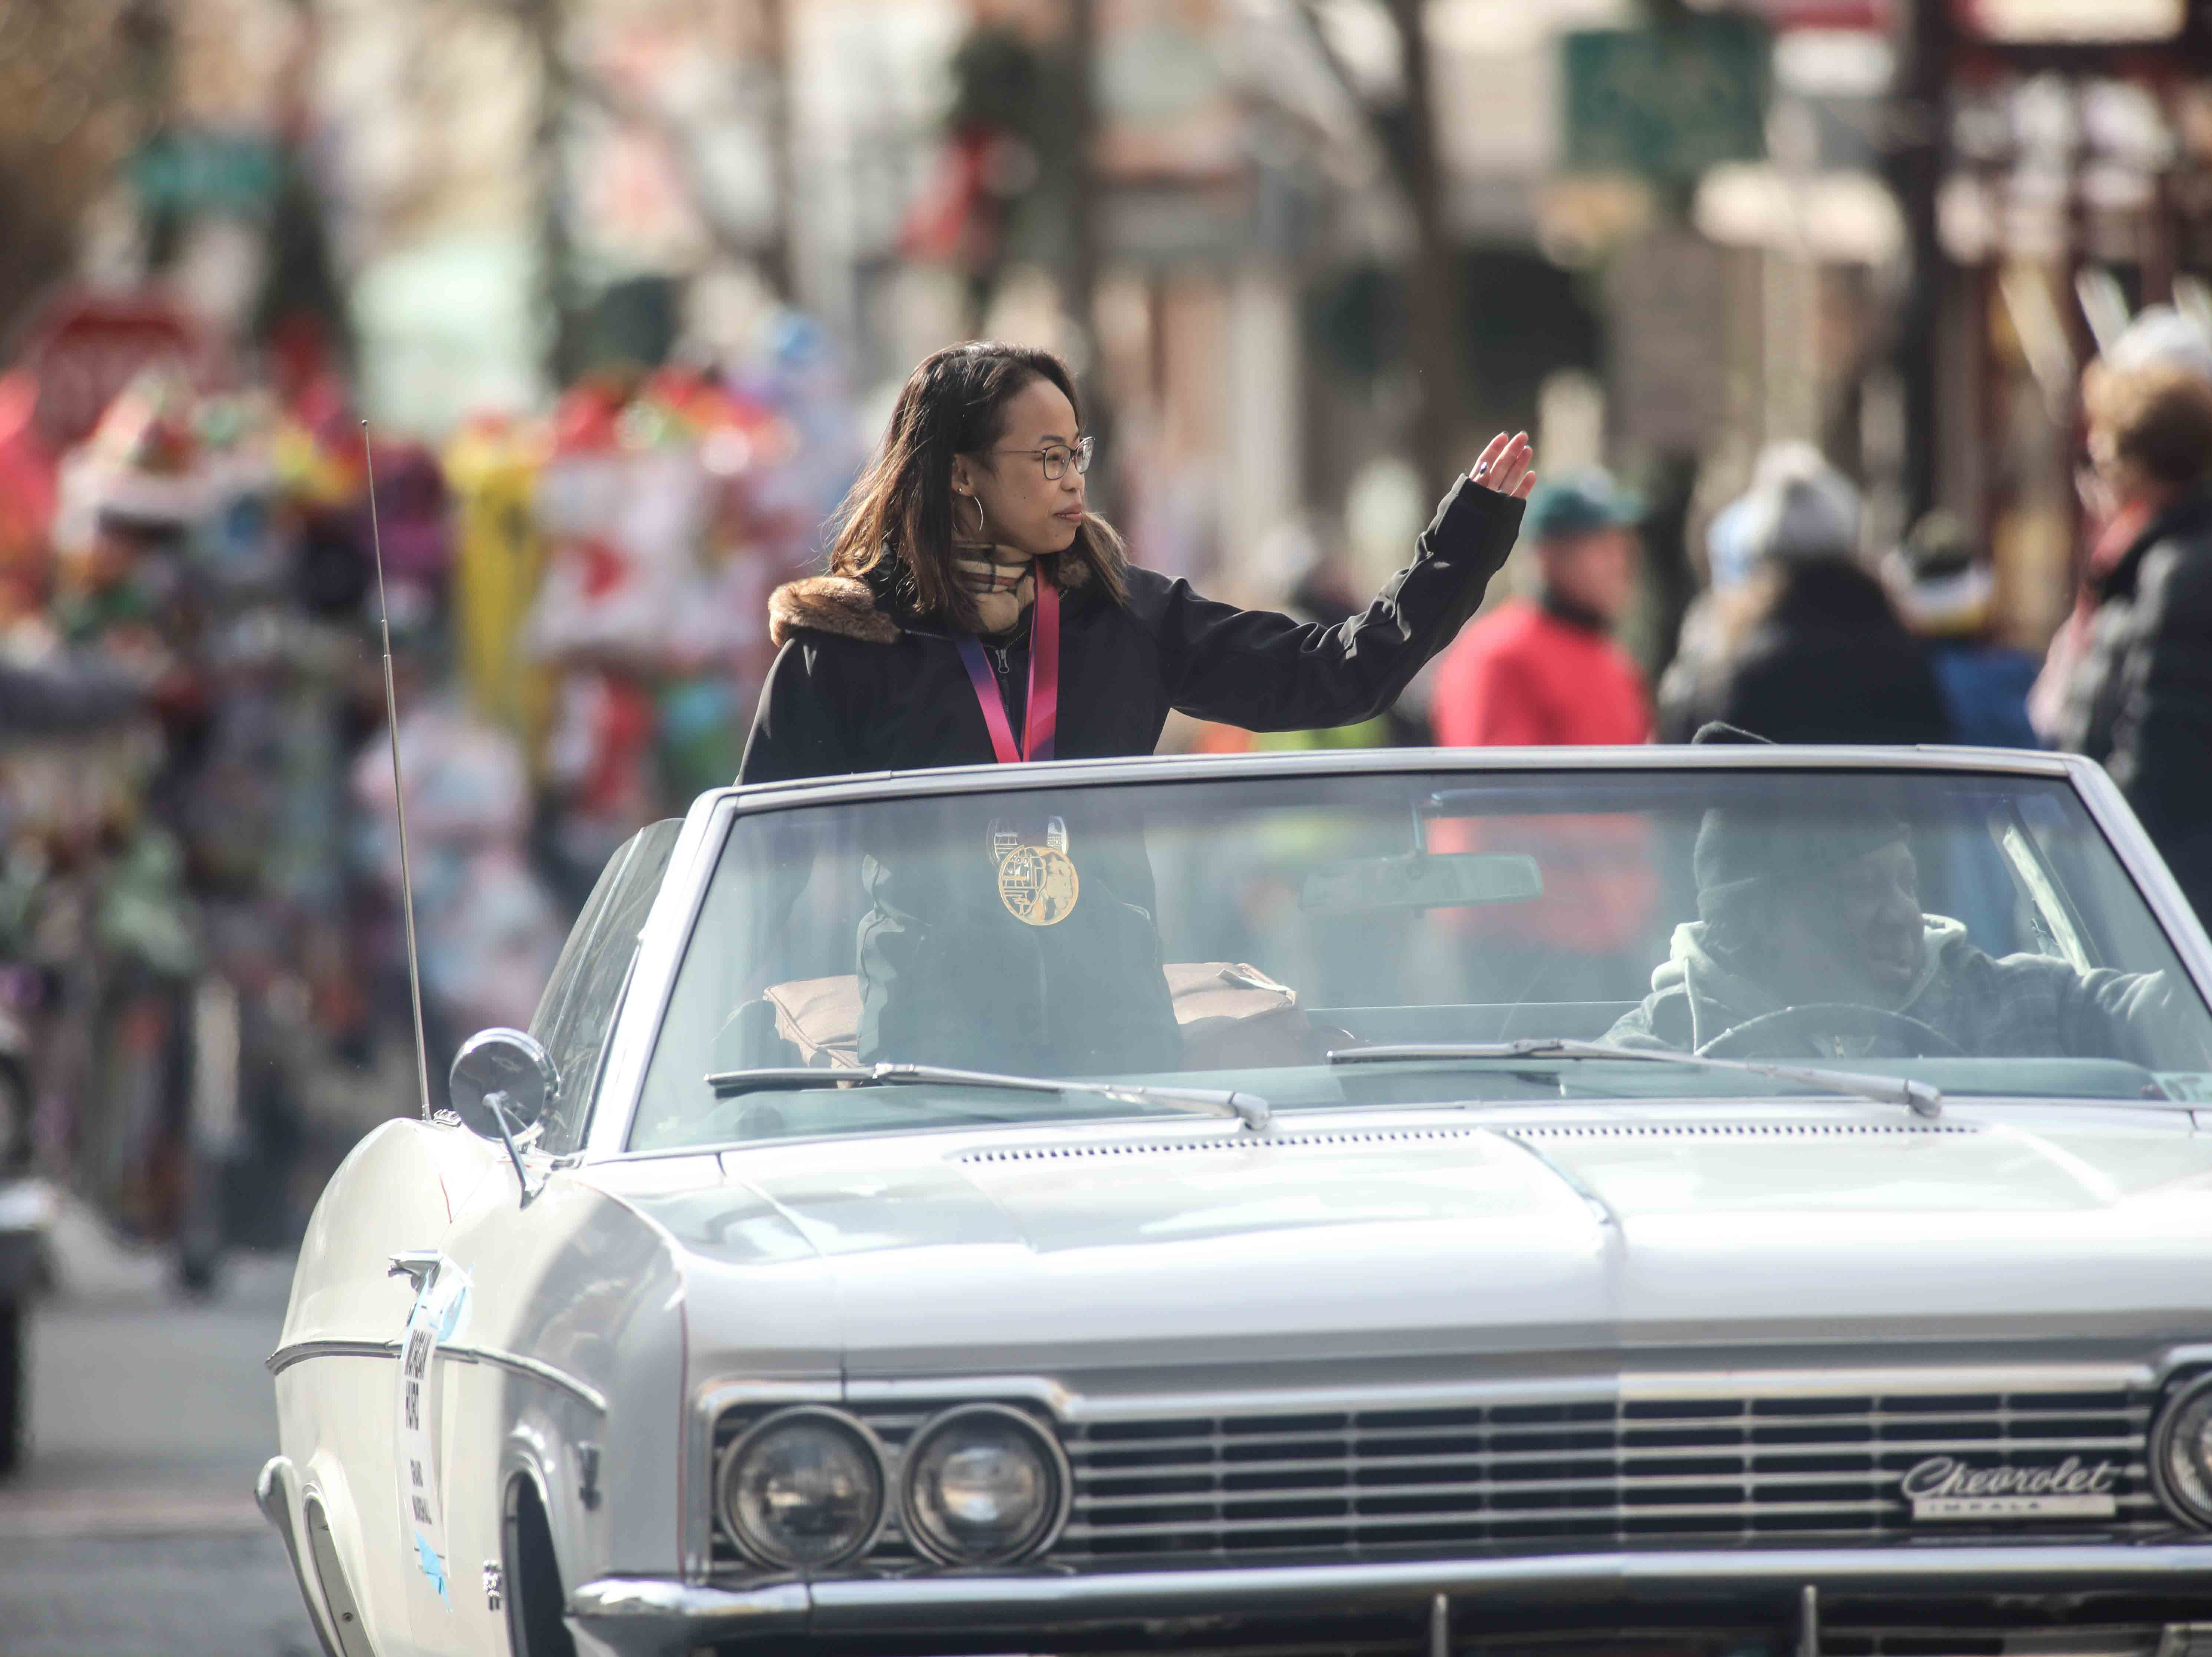 Grand Marshall World Champion Gymnast Morgan Hurd waves to spectators during the Wilmington Jaycees 55th Annual Christmas Parade along Market Street Saturday, Nov. 24, 2018, in Wilmington, Delaware.